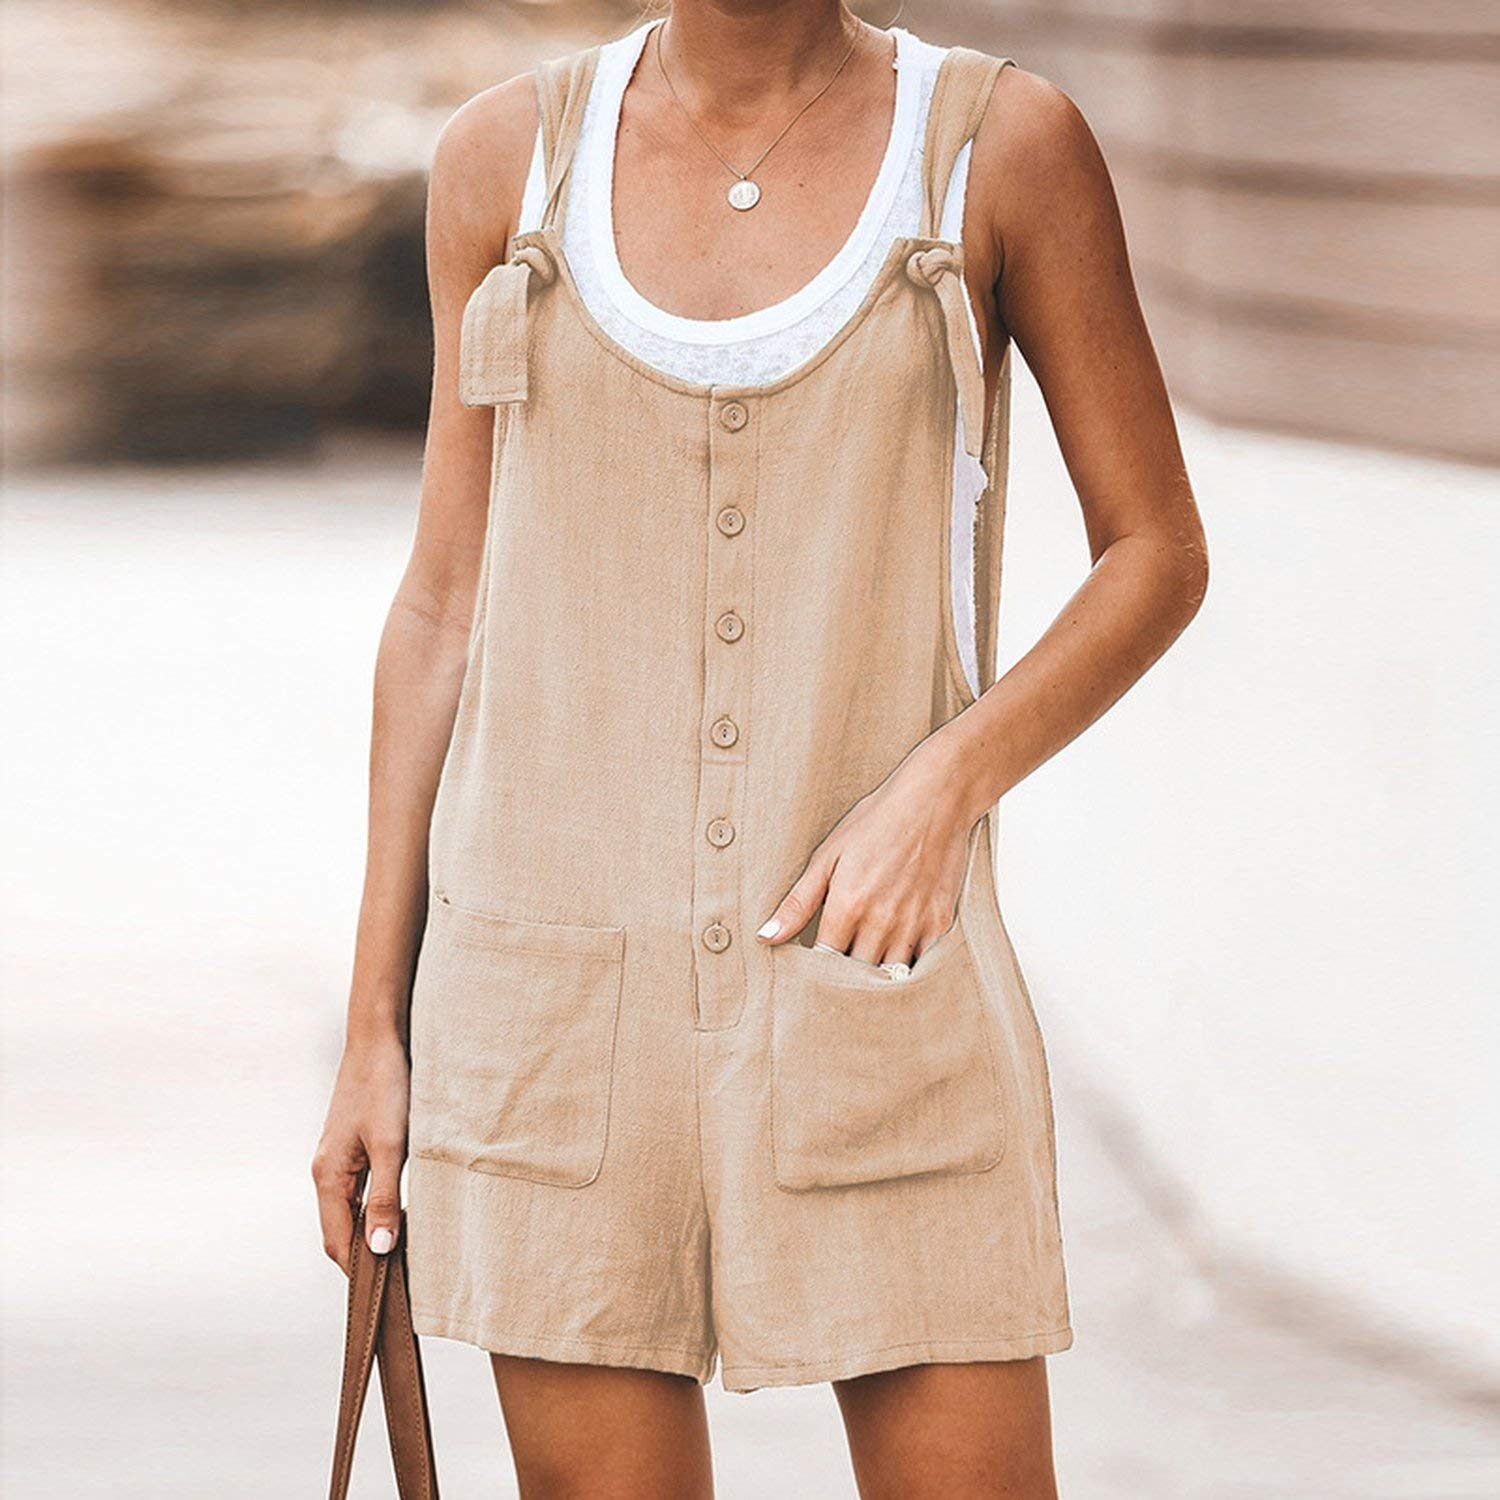 ADOMIFL Women Rompers Solid Jumpsuit Summer Short Jumpsuit Female Wrapped Strapless